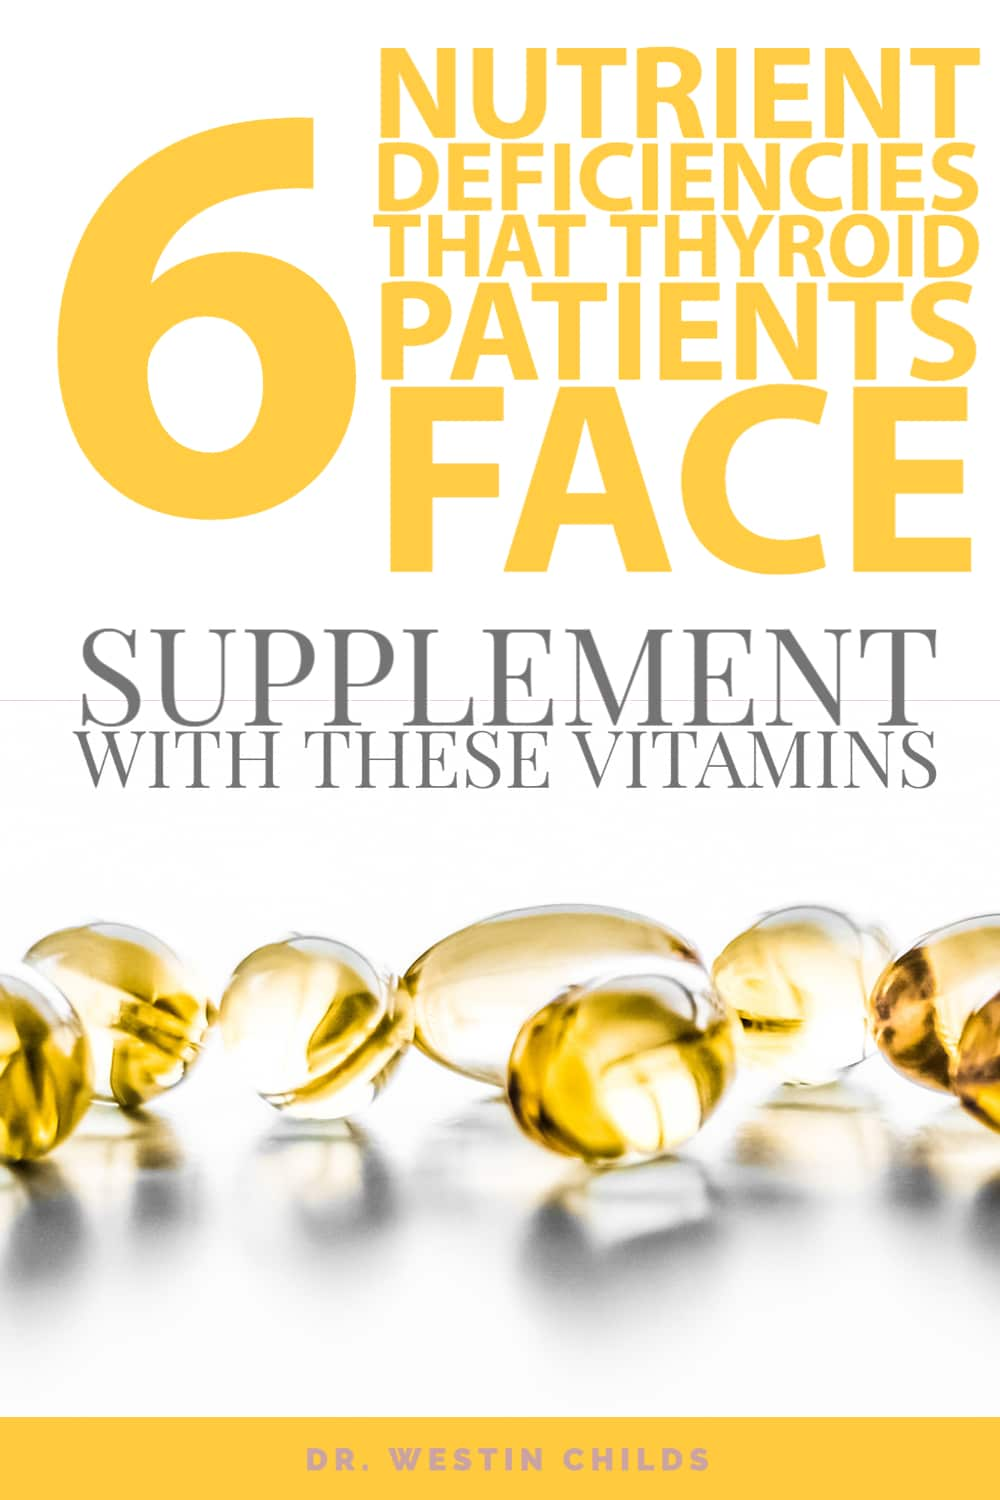 nutrient deficiencies in hypothyroid patients